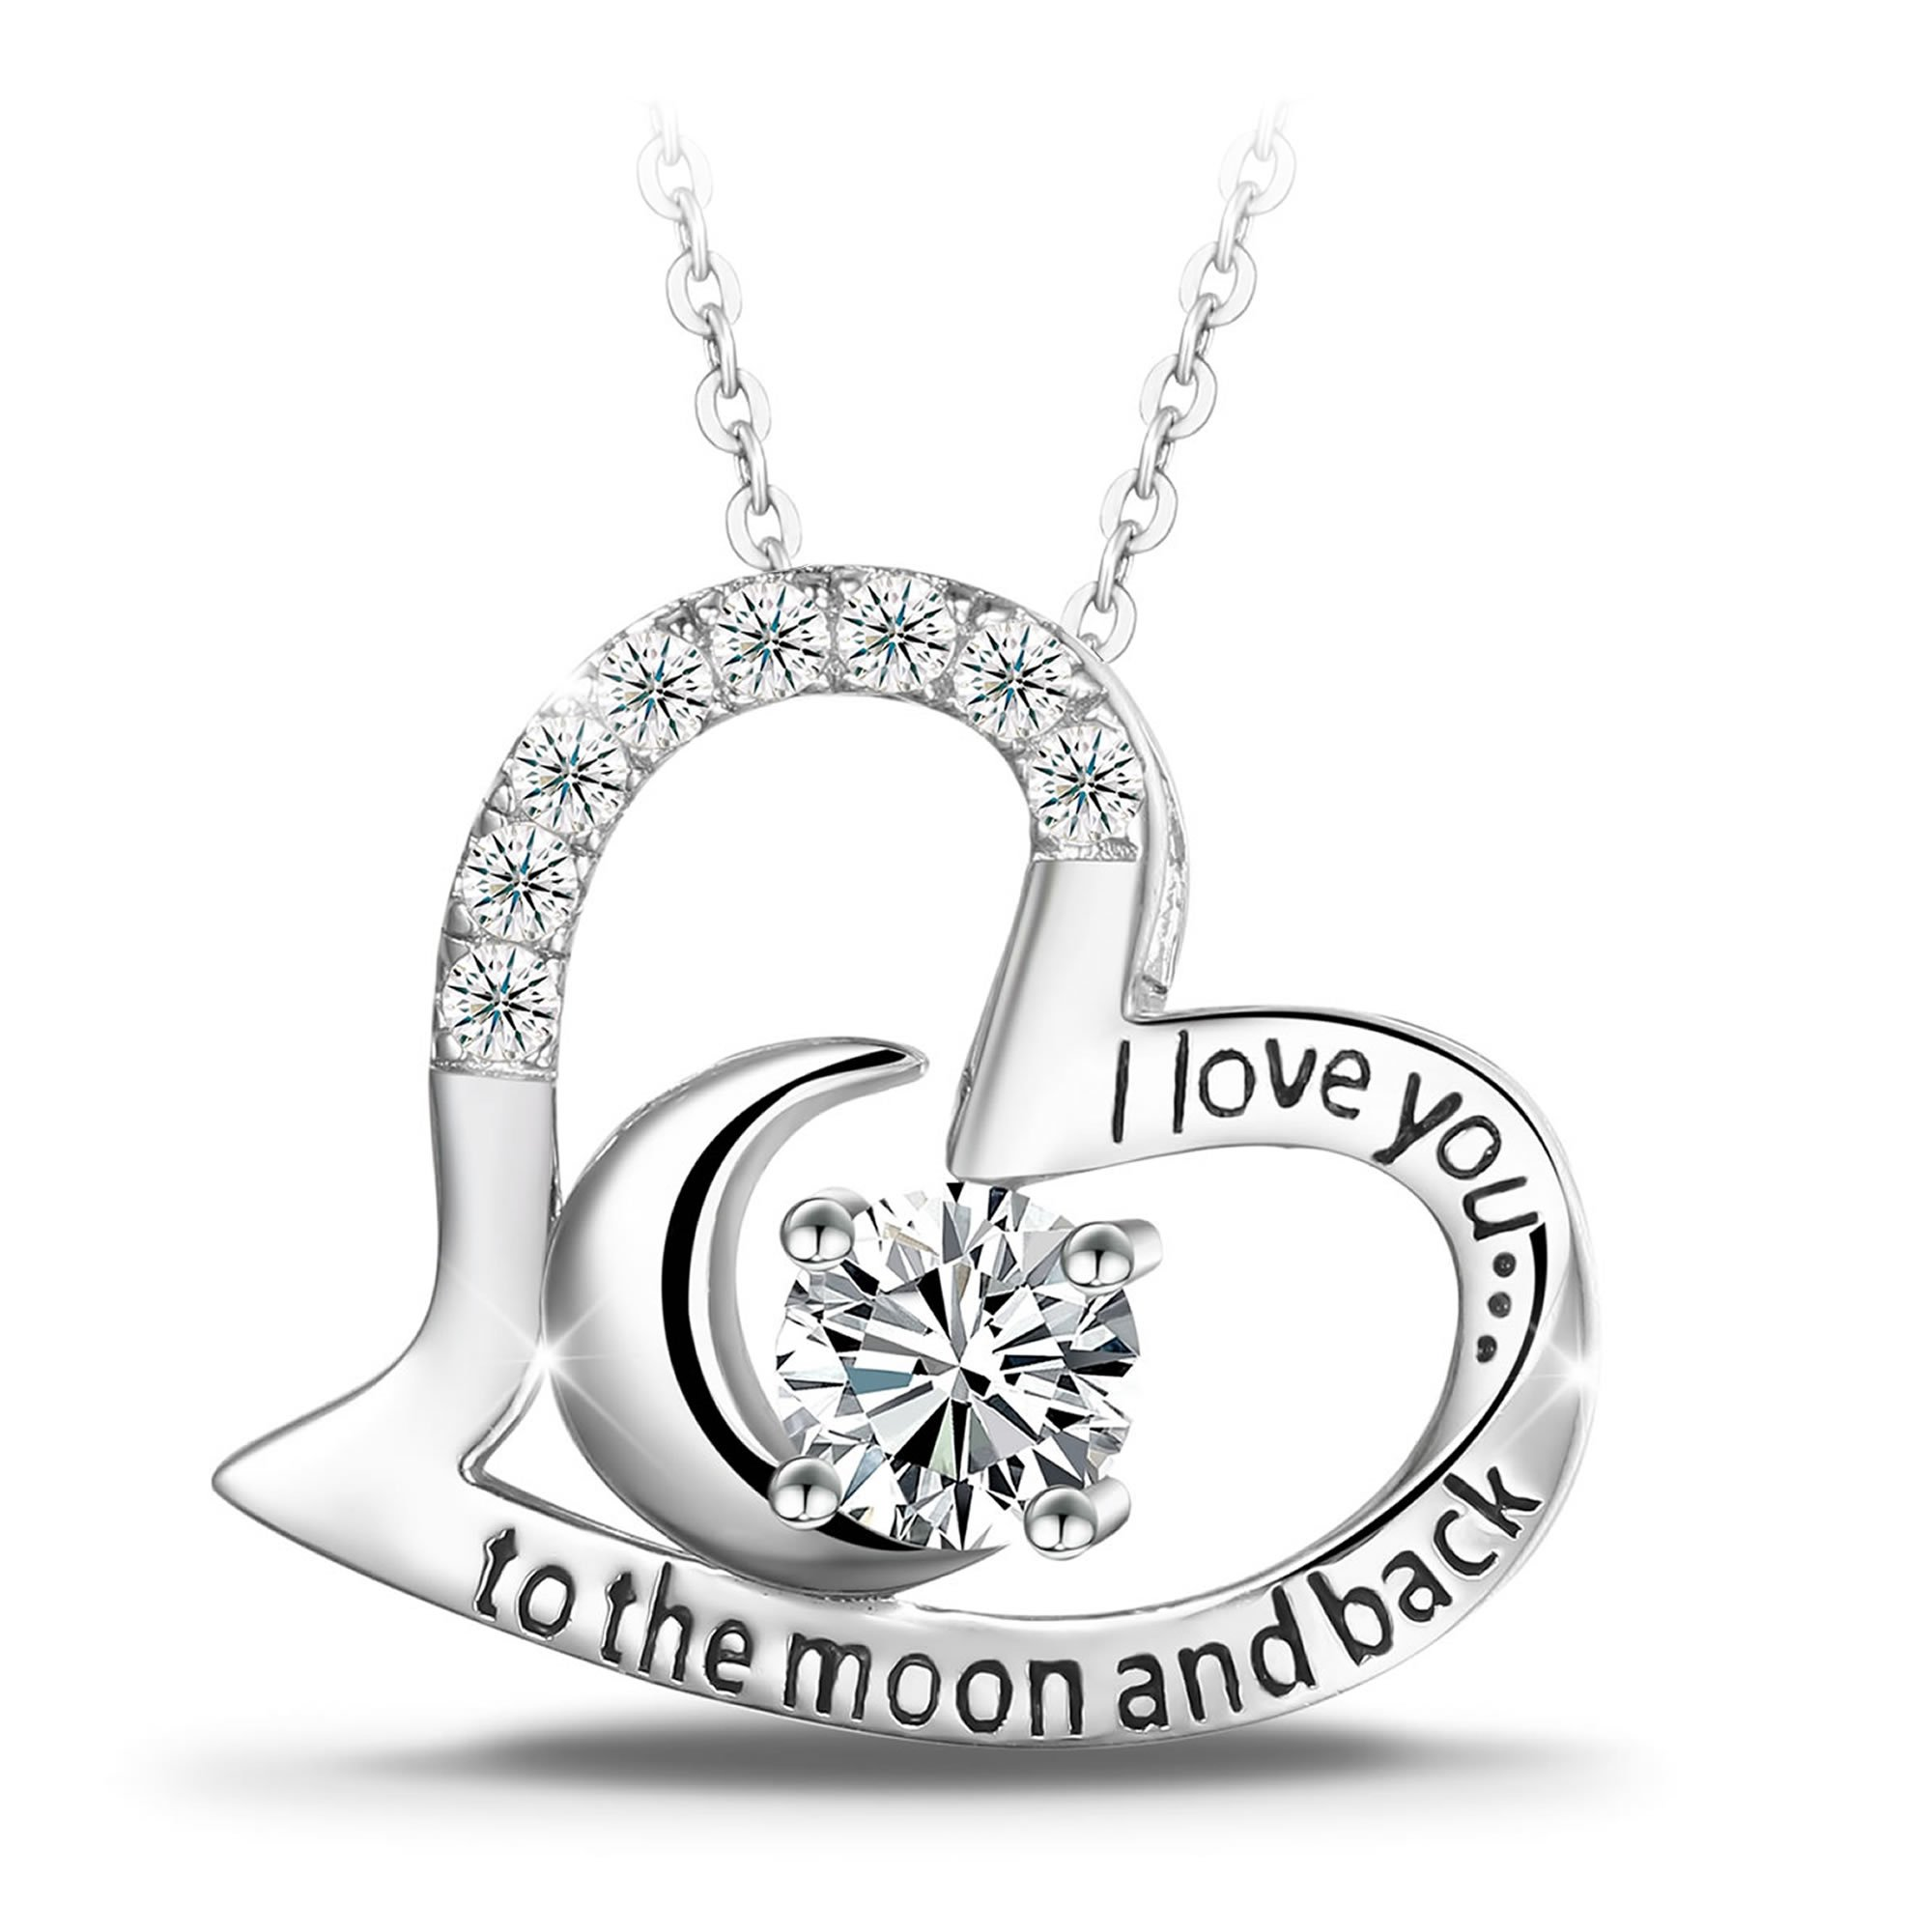 T400 925 Sterling Silver Necklace I Love You to The Moon Back White Cubic Zirconia Moon Heart Pendant Women Gift